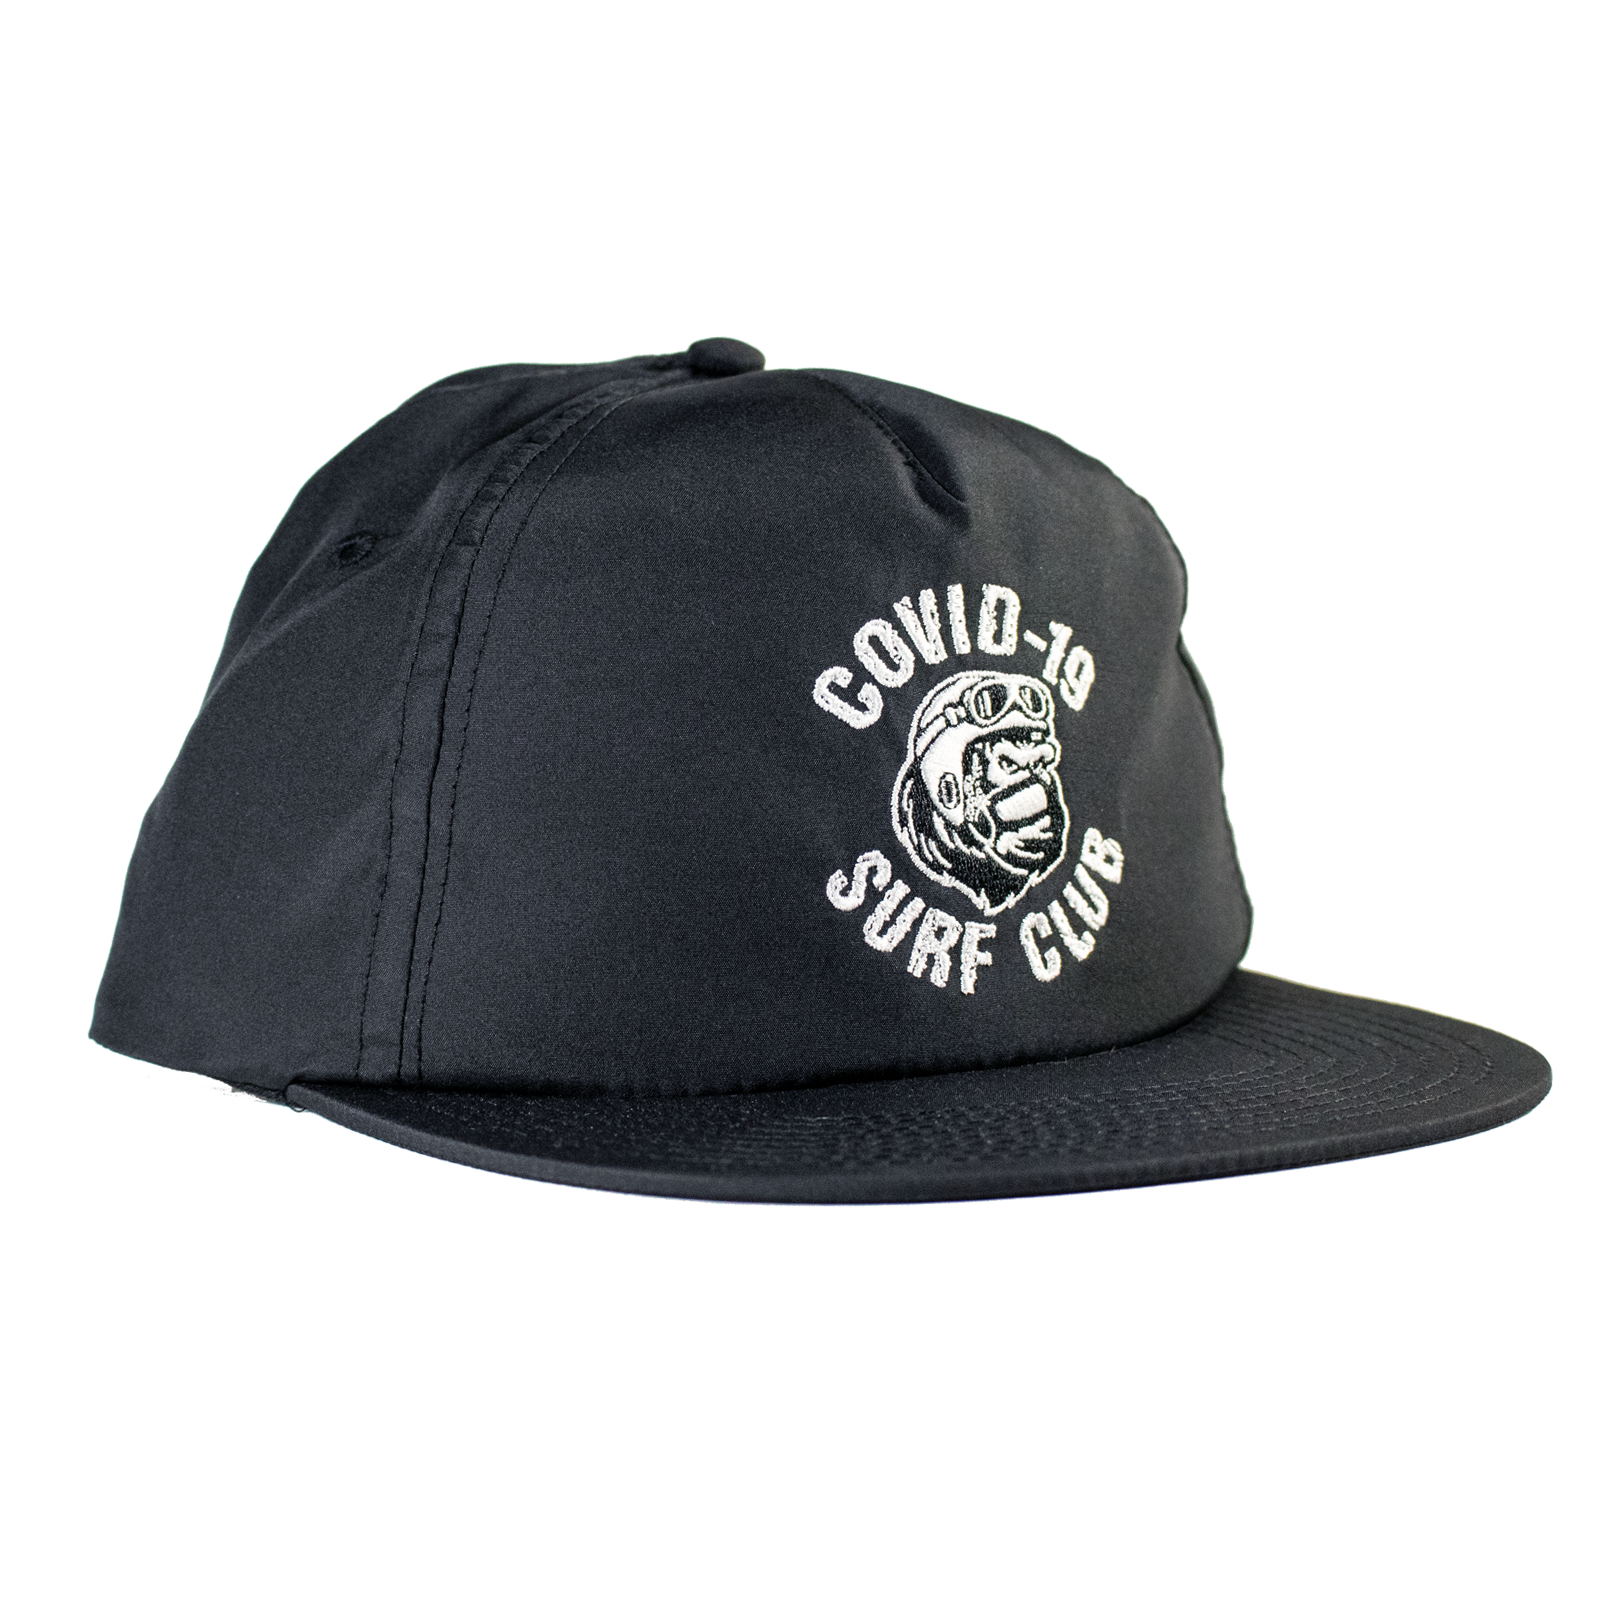 COVID-19 Surf Club - Black